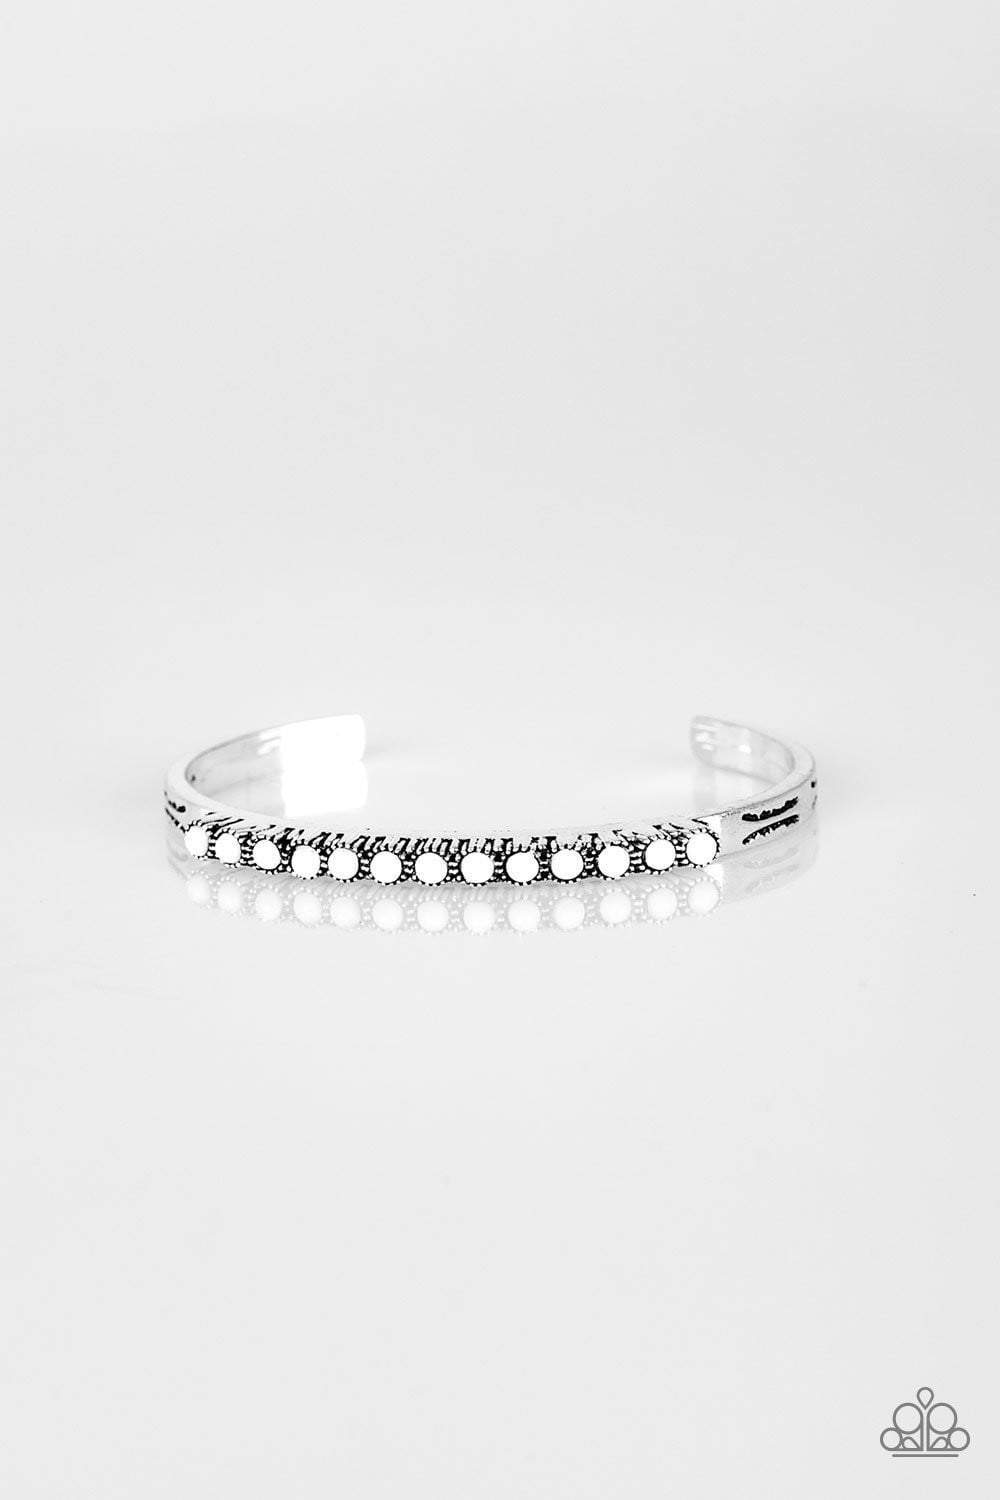 Paparazzi New Age Traveler - White Bracelet - Bling It On Online